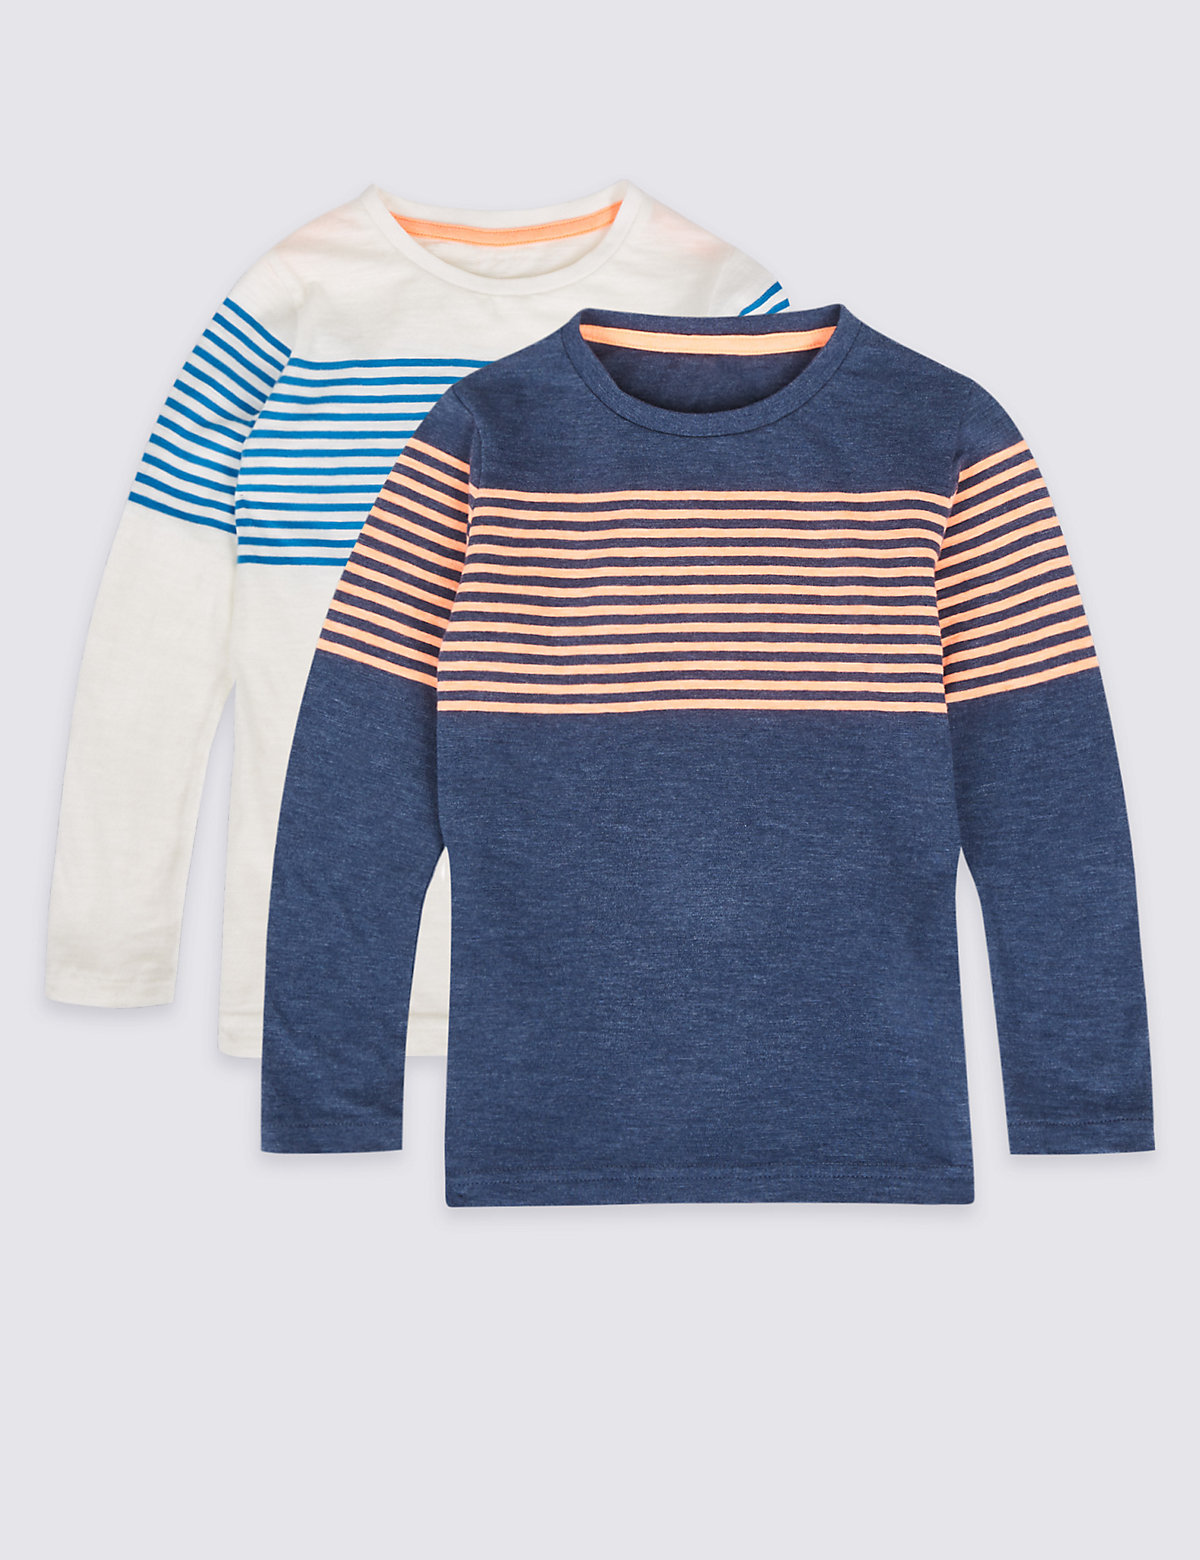 2 Pack Striped Tops (3 Months - 6 Years)